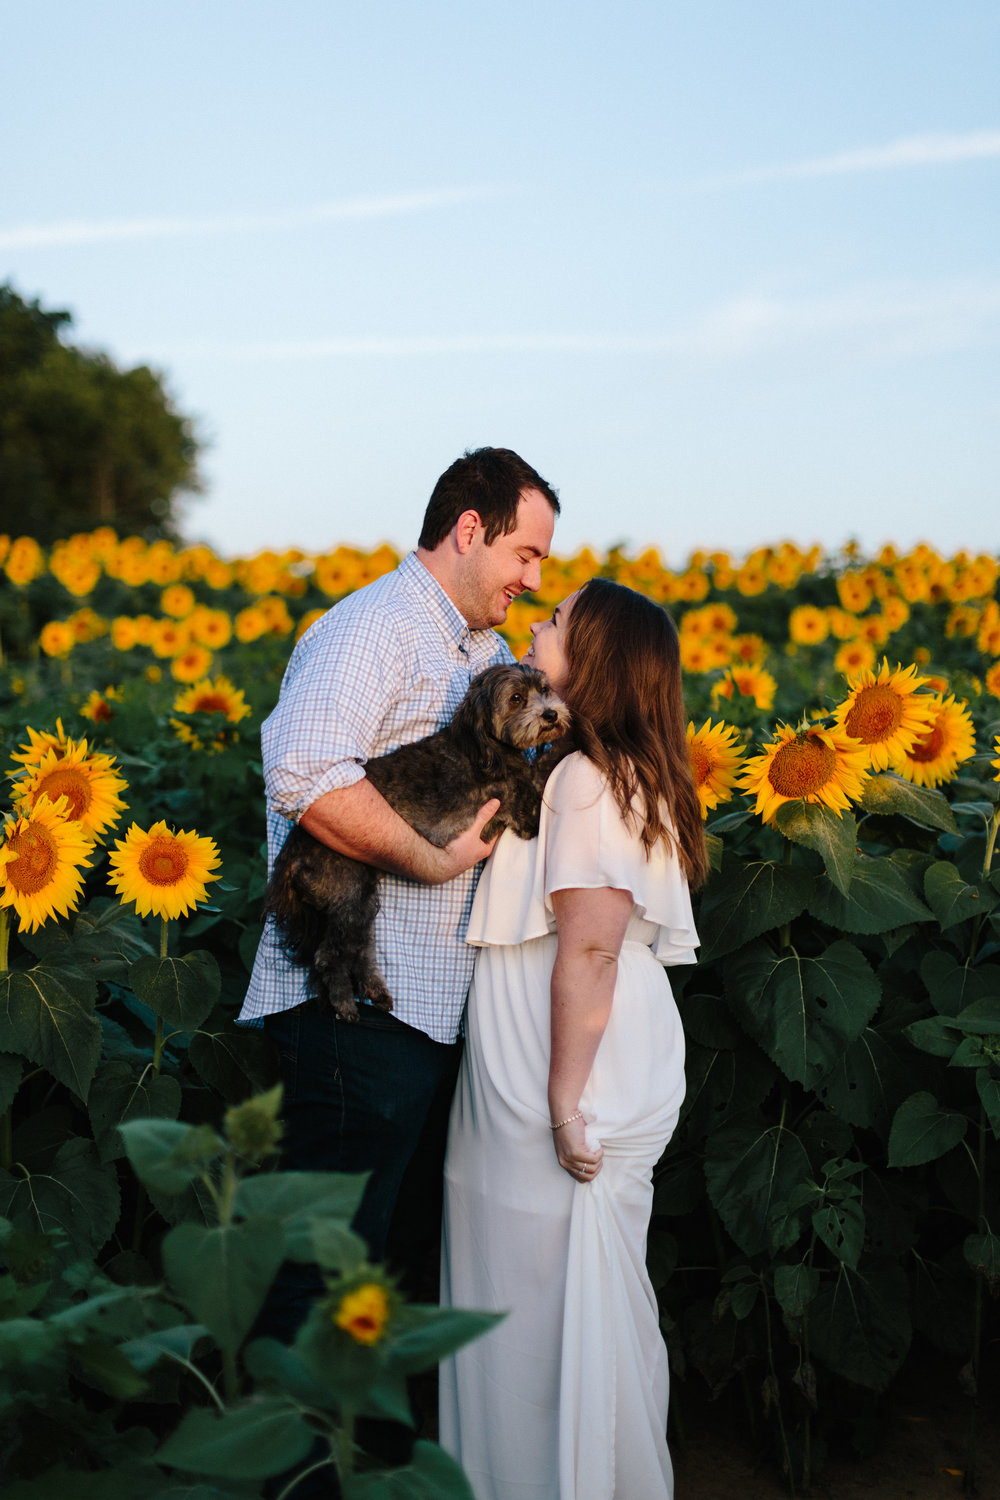 alyssa barletter photography sunflower field photos-4.jpg